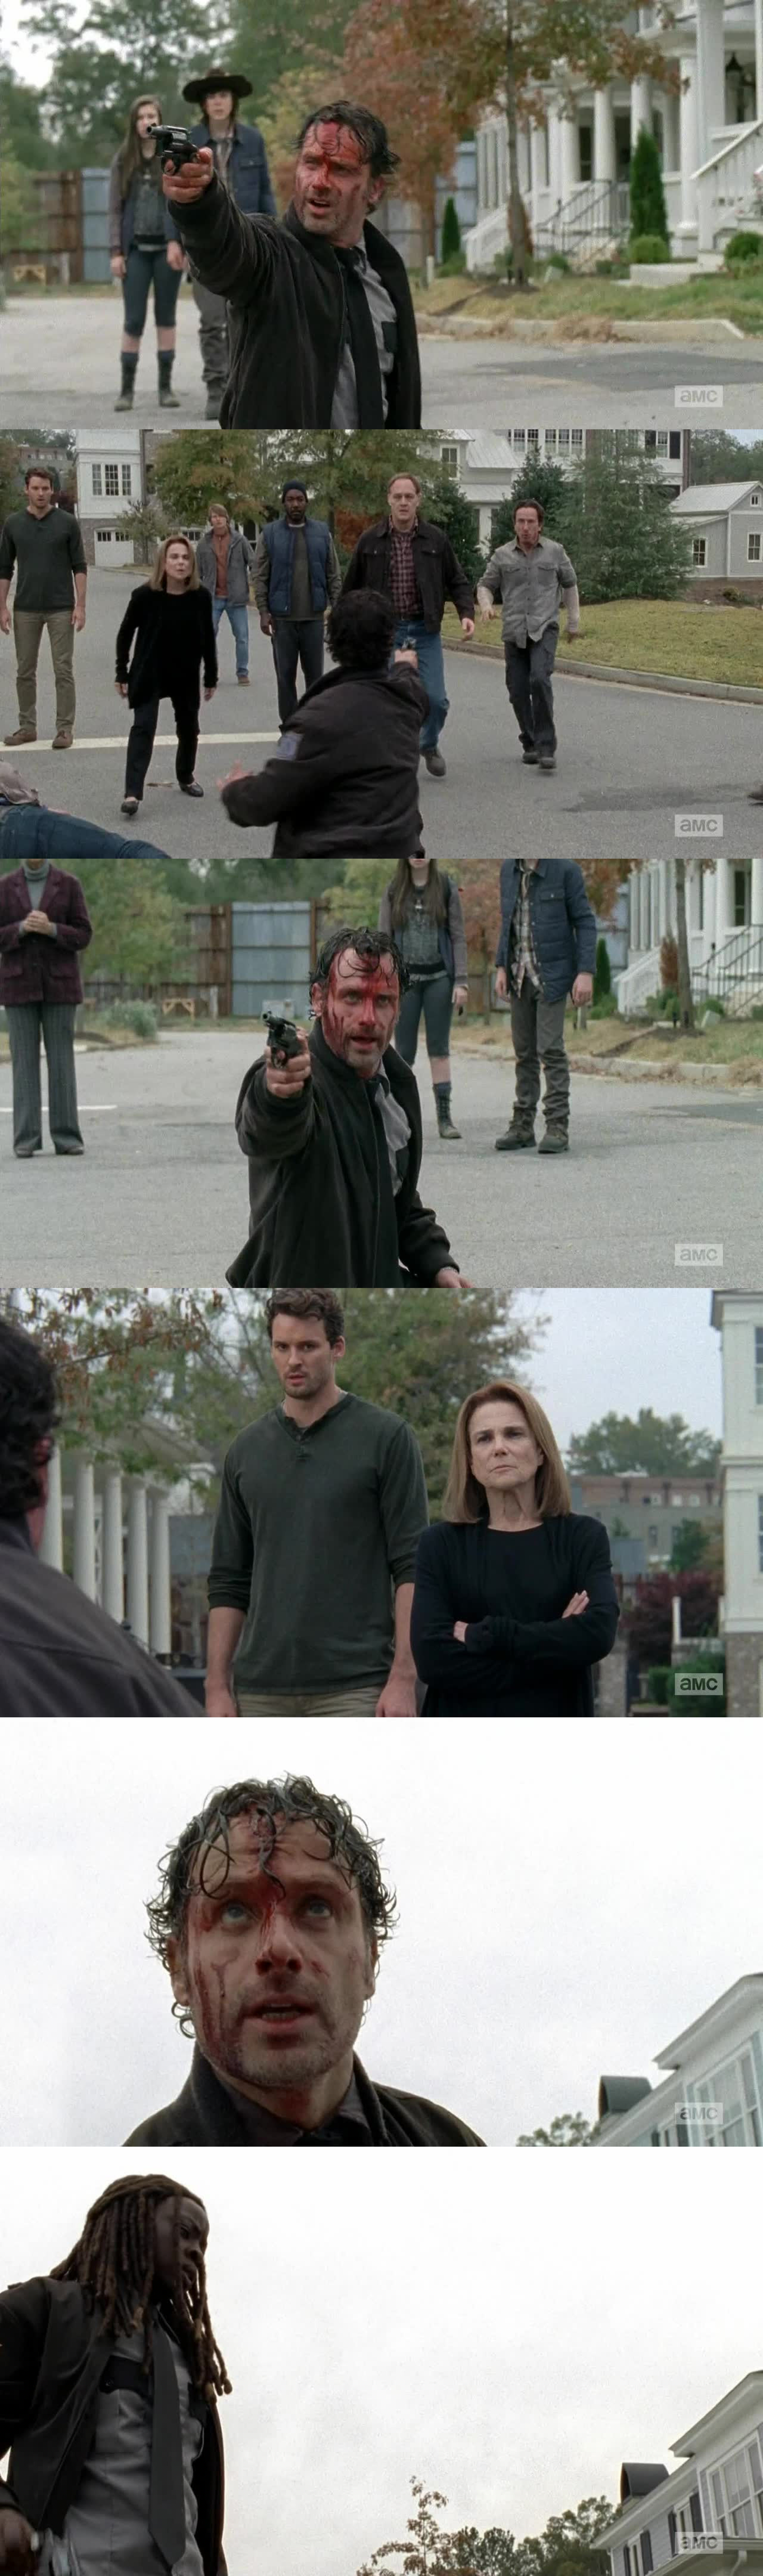 Those last 15 minutes were pretty intense. I honestly thought someone was gonna get shot, in those last few minutes. Specially thought maybe Sasha would shoot someone from that tower. Can't wait for the next episode. Excited to see what will happen. I am sure someone will die. Which worries me. Next week better come quick!!